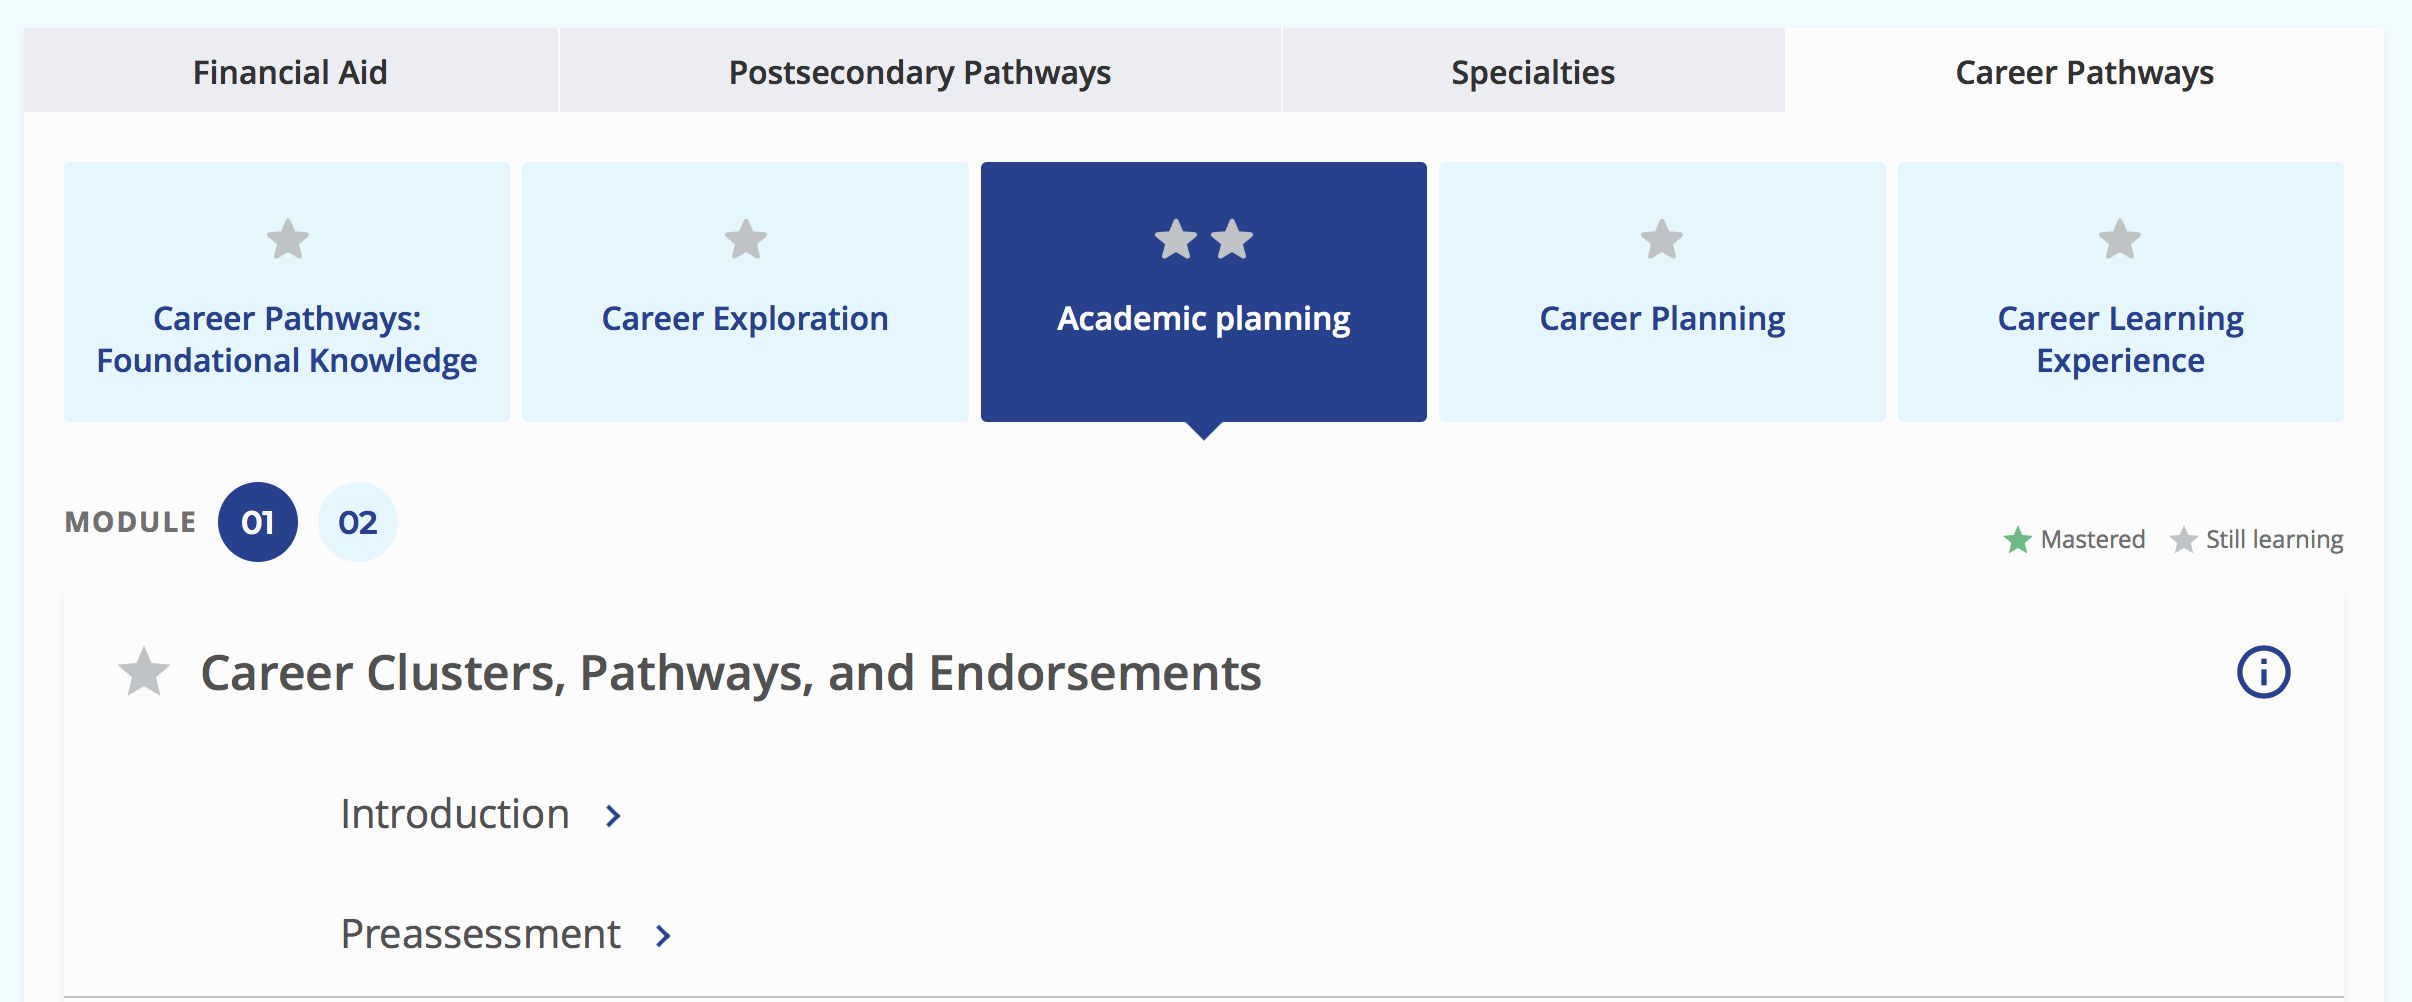 Career Clusters, Pathways, and Endorsements